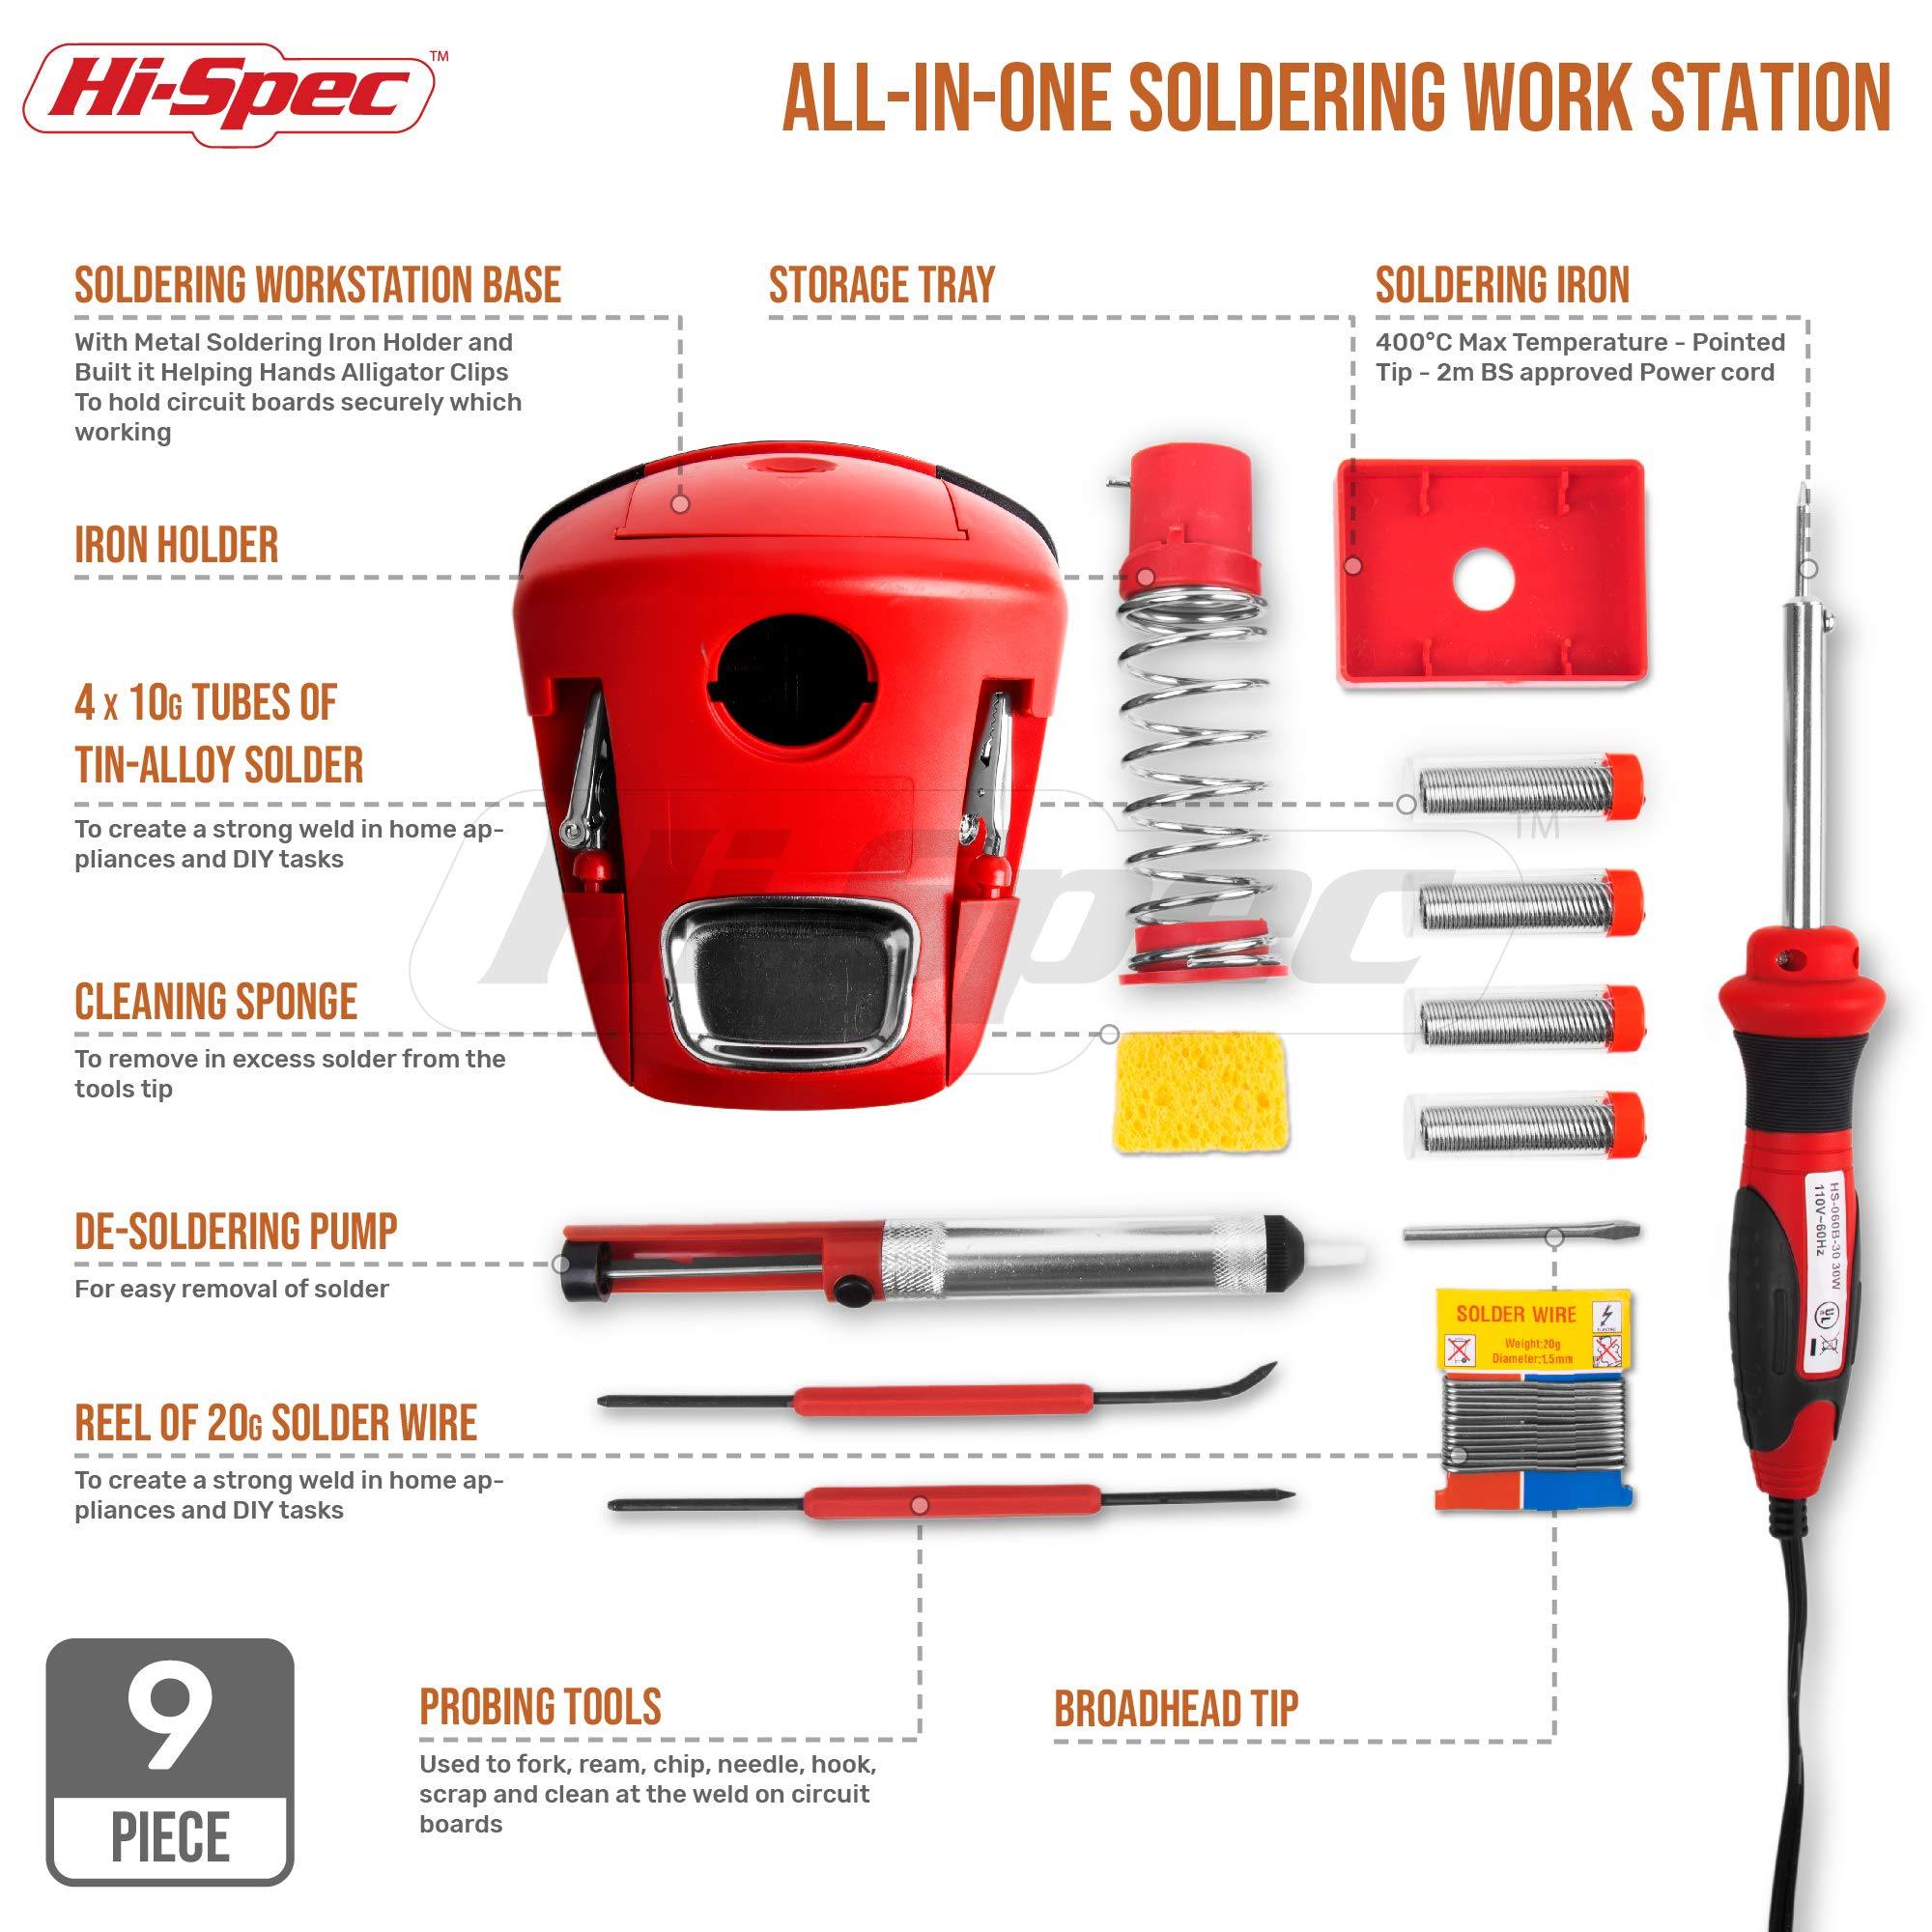 Hi-Spec All-In-One 30W Soldering Station inc. Soldering Iron, Helping Hands & 9pc Accessory Set - Desoldering Pump, Tin Alloy Solder, De-Solder Alloy & 2pc Solder Assist Tools by Hi-Spec (Image #1)